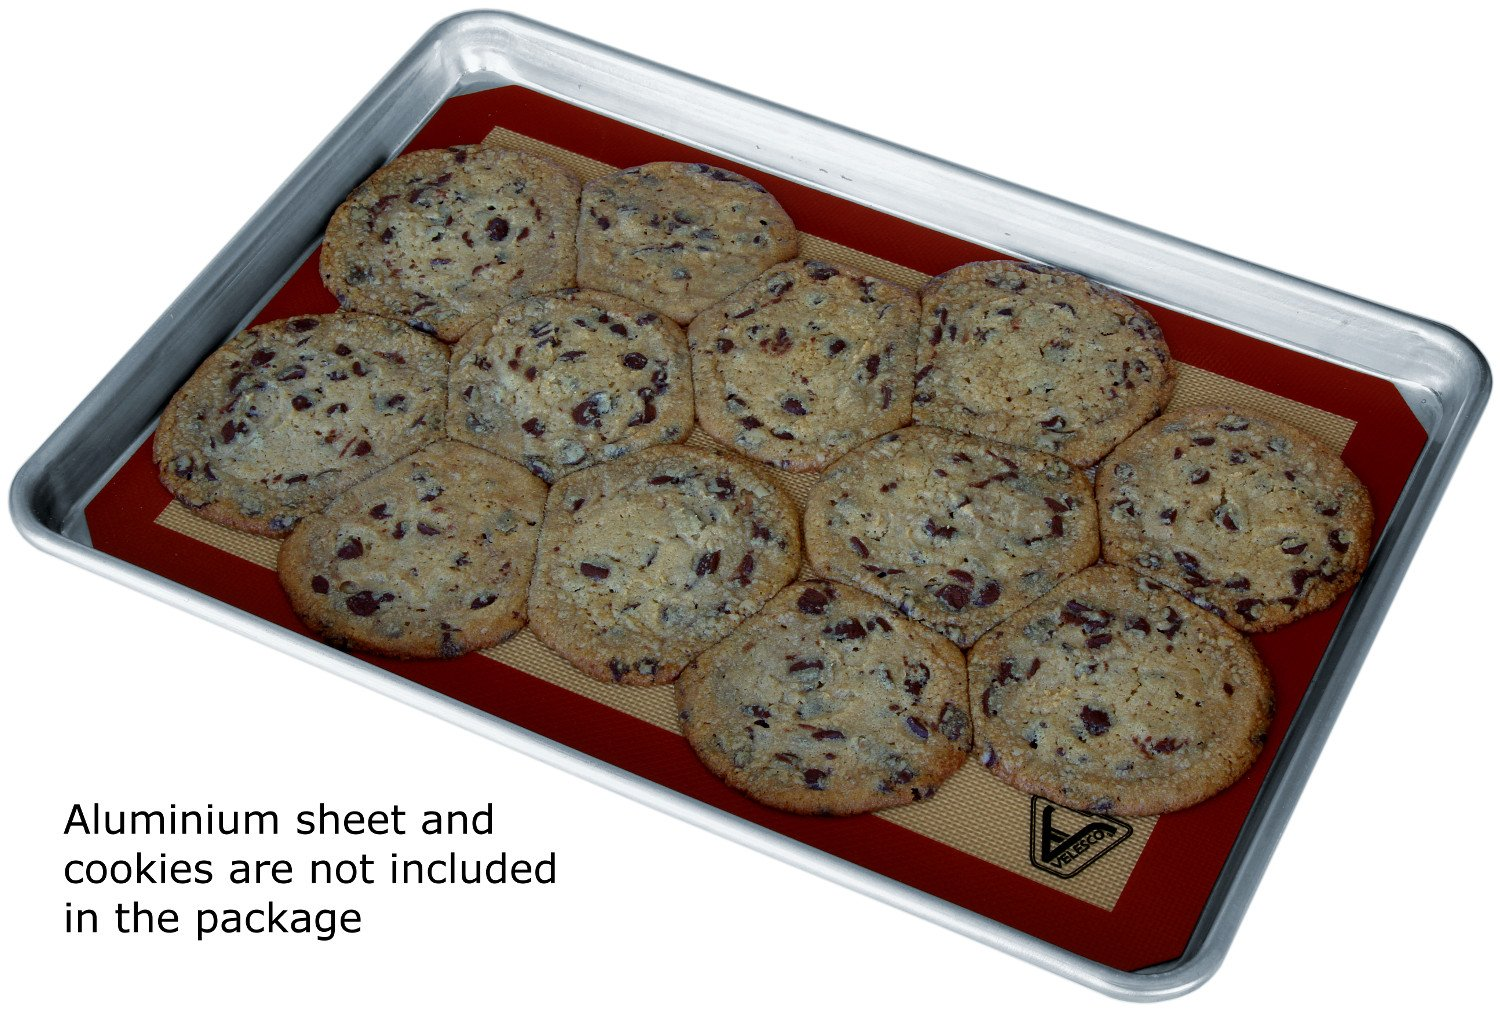 Silicone Baking Mat - Set of 3 Half Sheet (Thick & Large 11 5/8'' x 16 1/2'') - Non Stick Silicon Liner for Bake Pans & Rolling - Macaron/Pastry/Cookie/Bun/Bread Making - Professional Grade Nonstick by Velesco (Image #9)